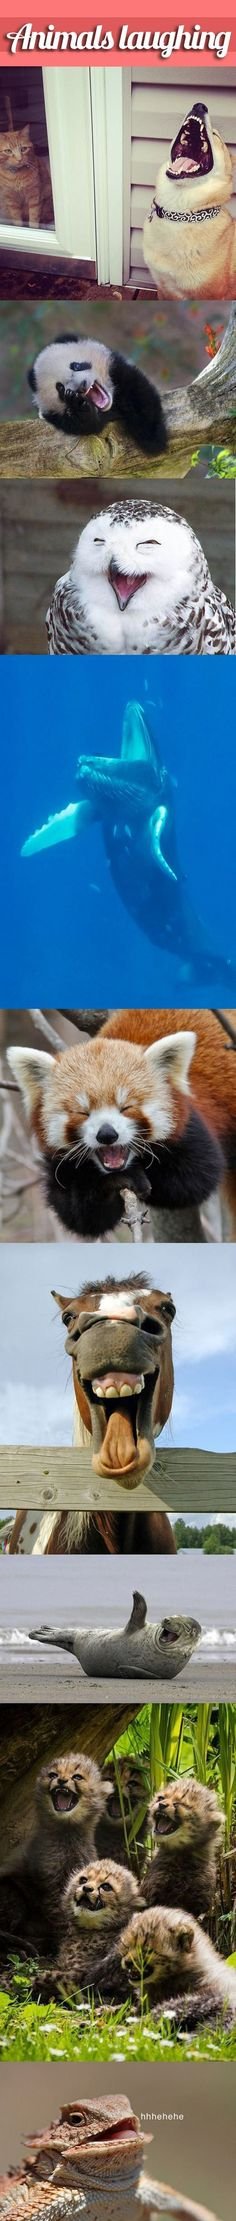 animals laughing. could there be anything cuter?: